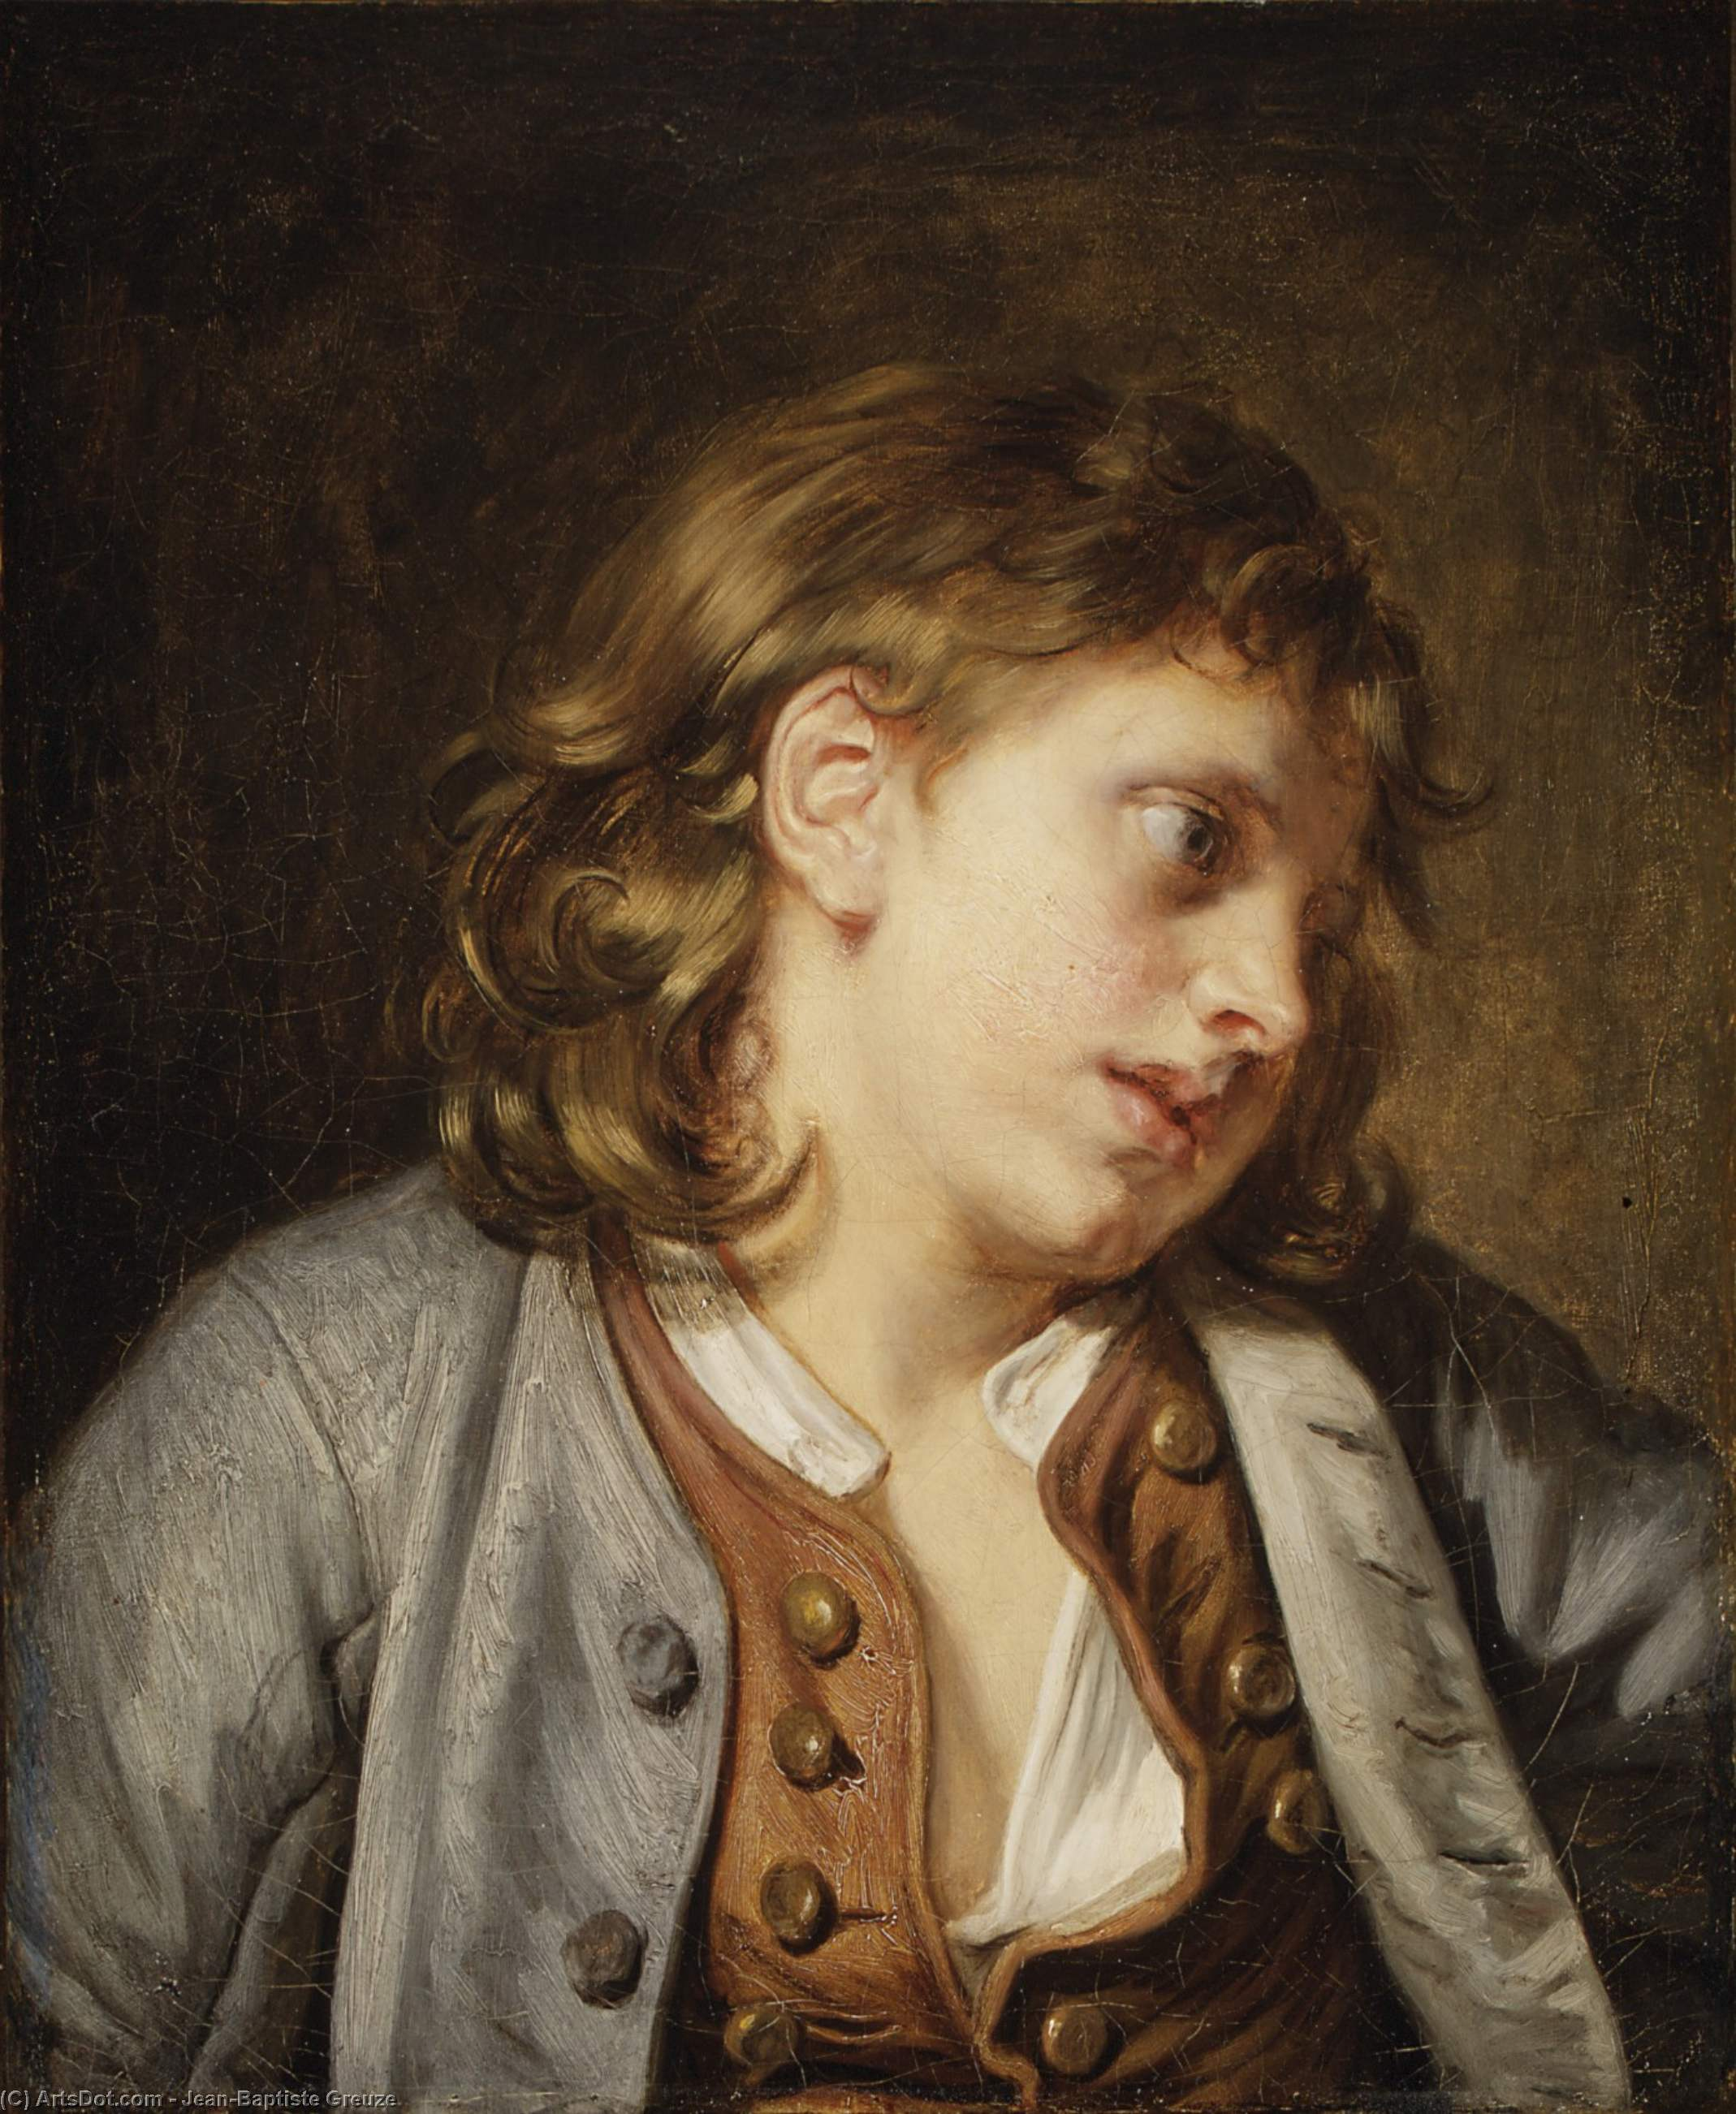 A Young Peasant Boy by Jean-Baptiste Greuze (1725-1805, France)